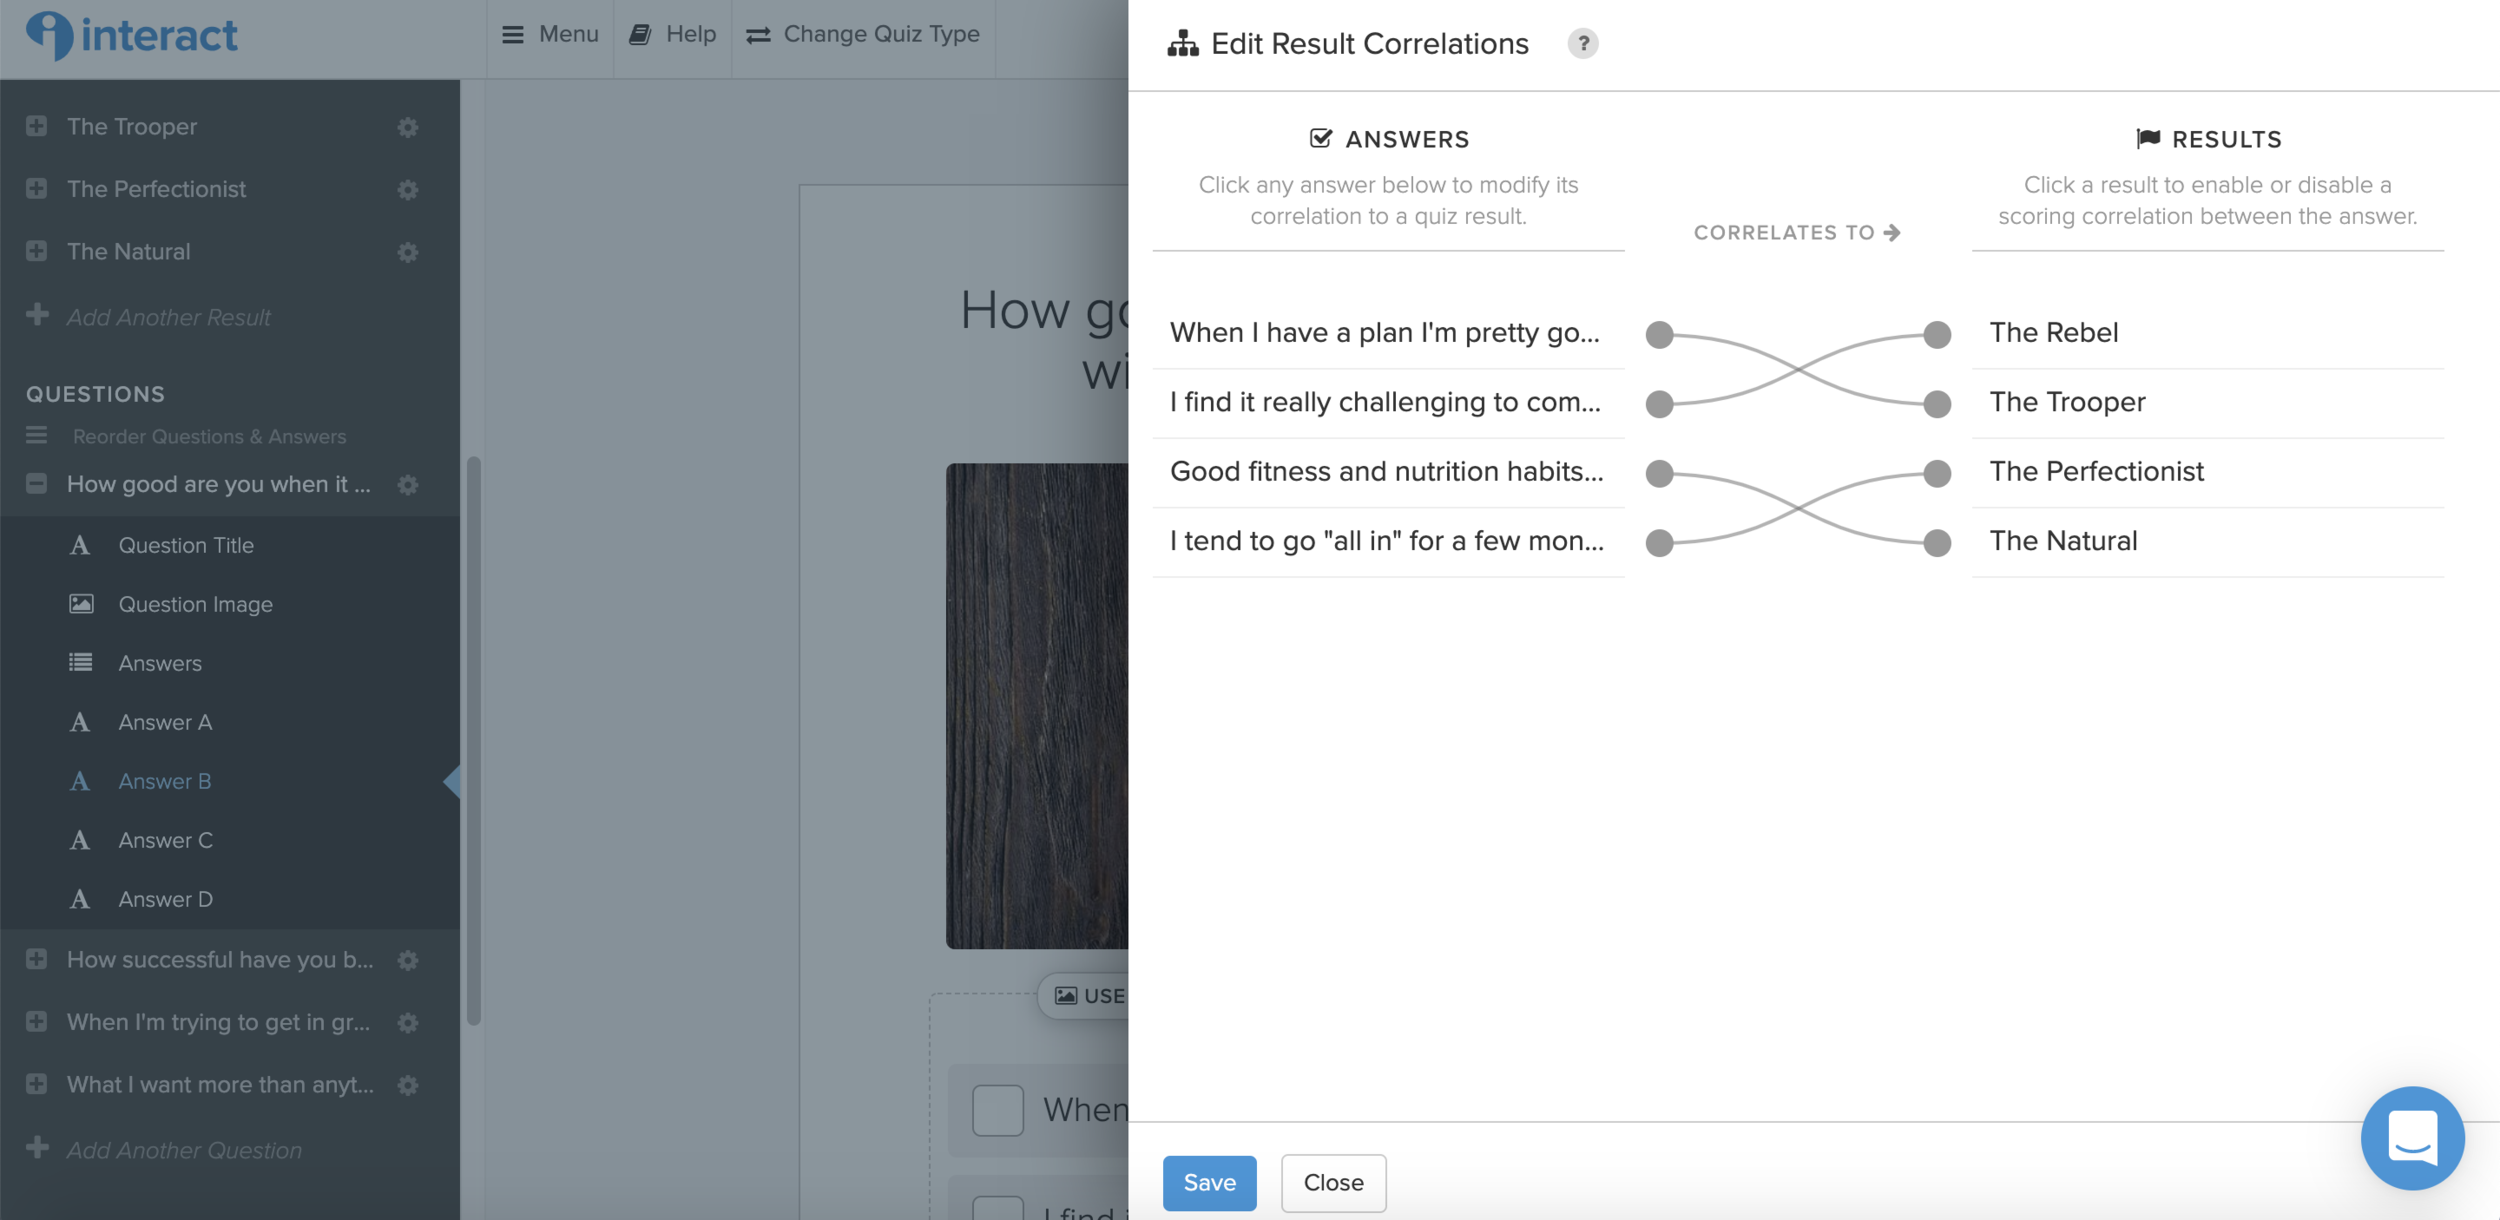 It's super easy to create a quiz using Interact. You just connect each answer to the associated result.